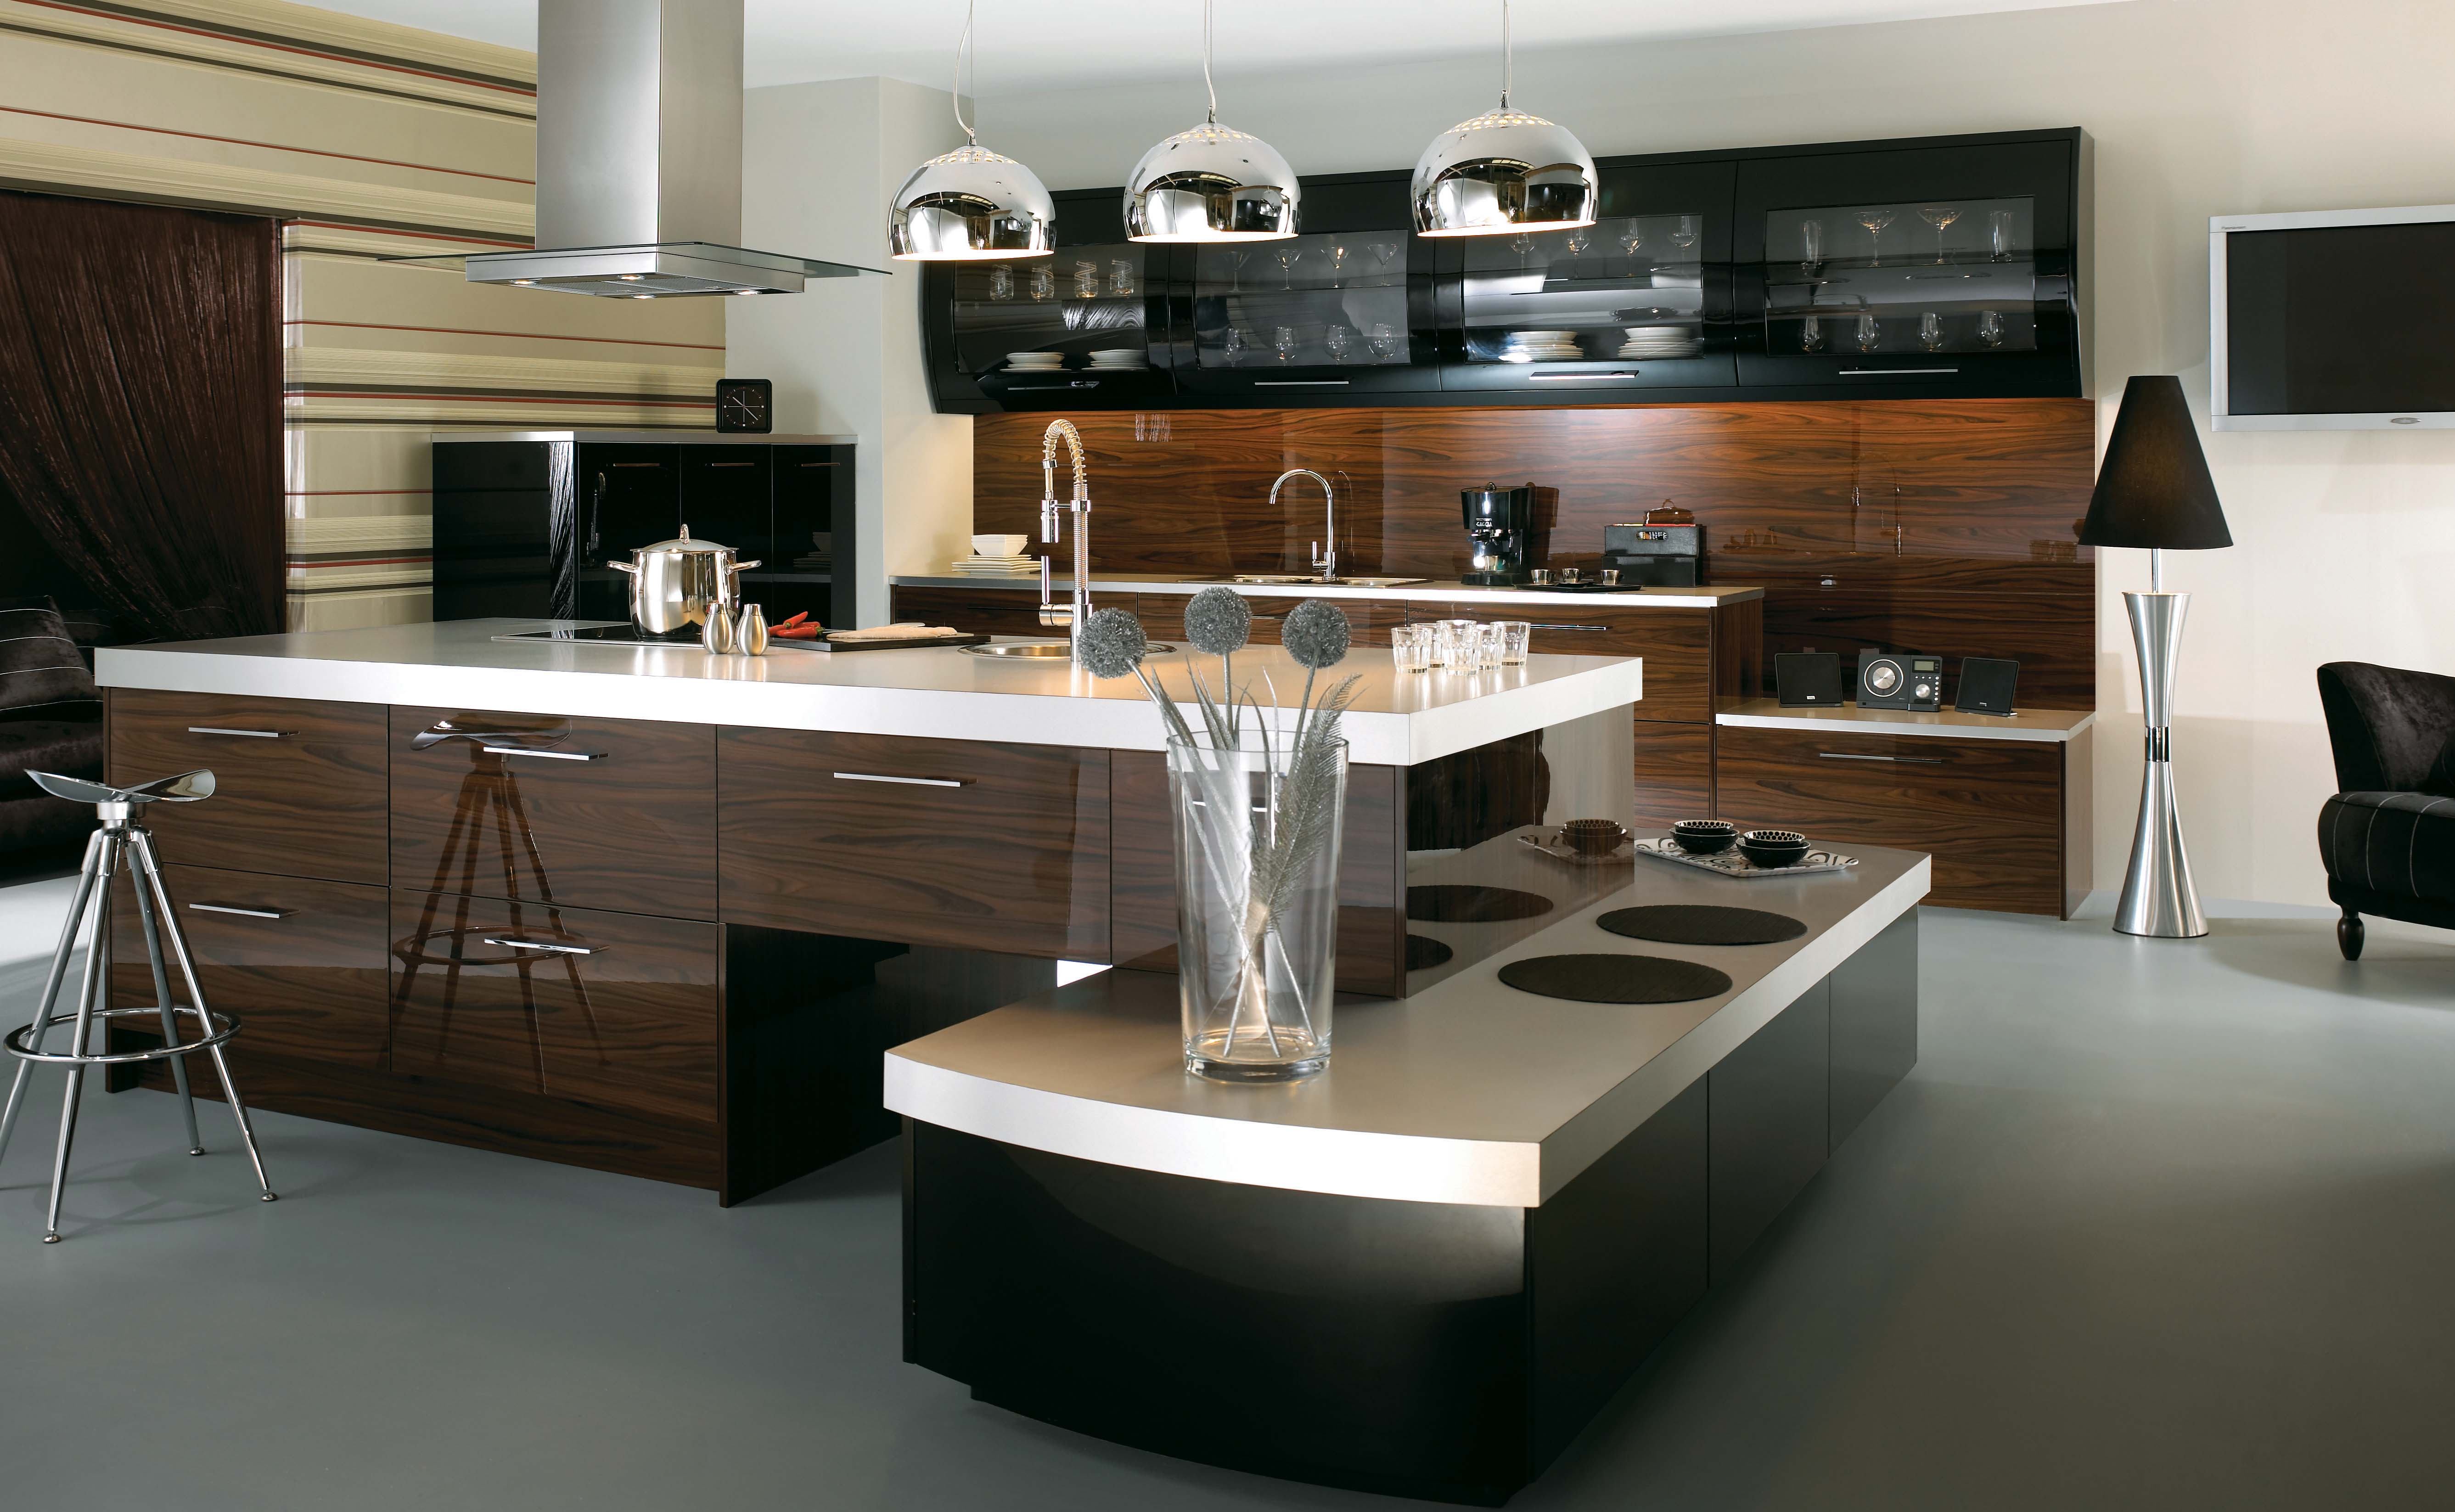 the unexpected stylish look of black kitchen designs kitchen designs The Unexpected Stylish Look Of Black Kitchen Designs 14